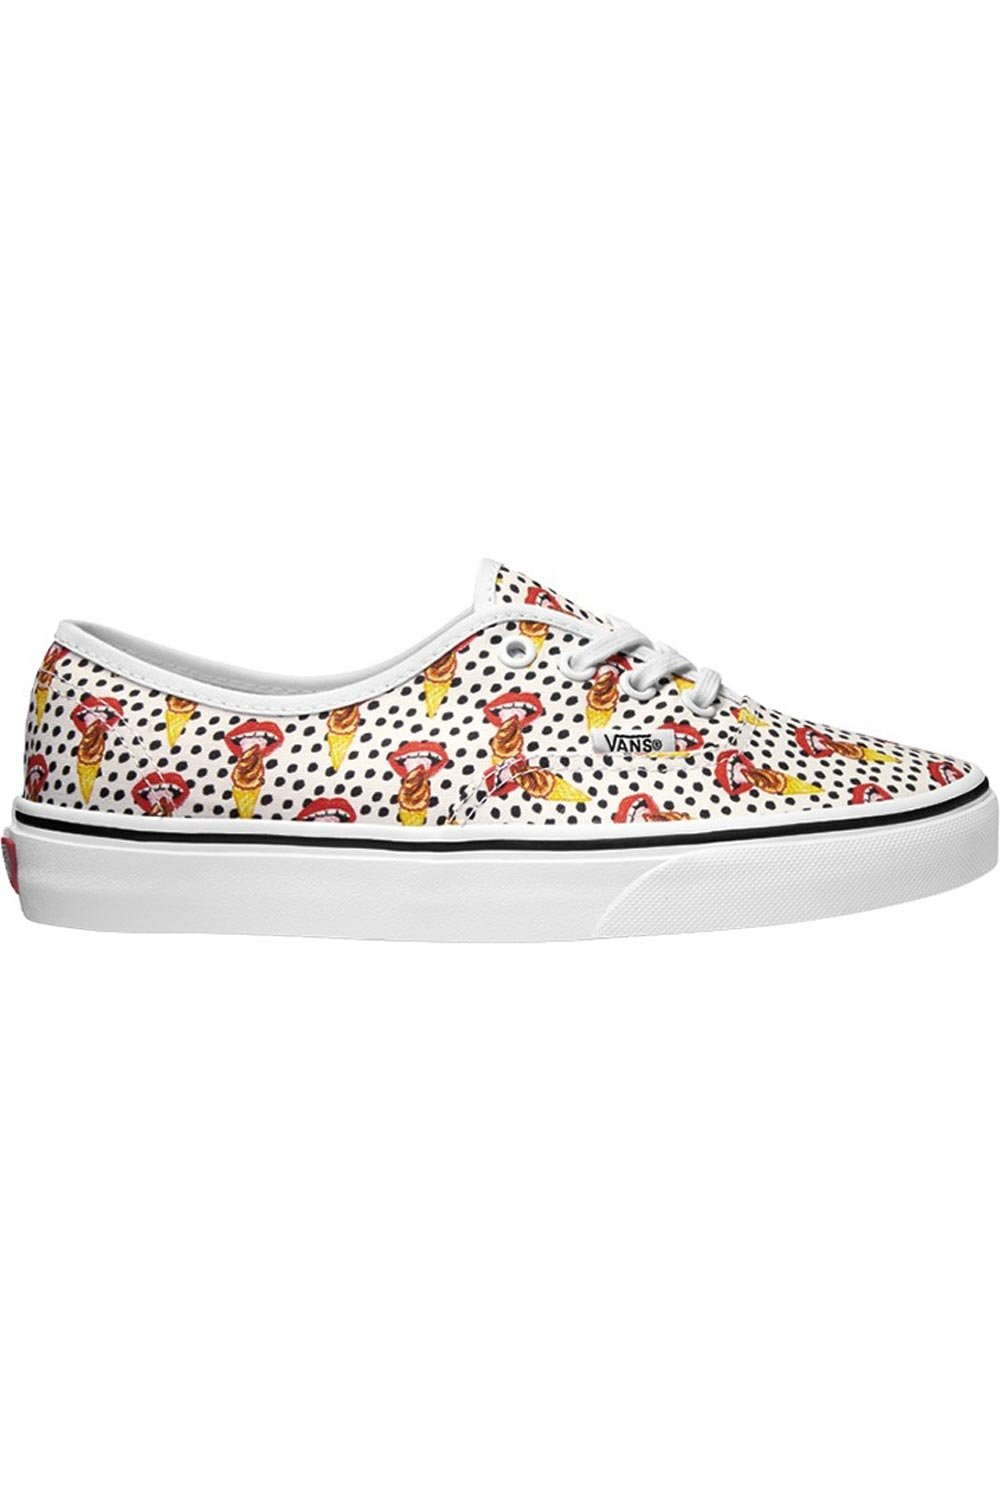 a6f357fdf4 Galleon - Vans Authentic Kendra Dandy I Scream True White Ankle-High Canvas  Skateboarding Shoe - 10.5M 8.5M